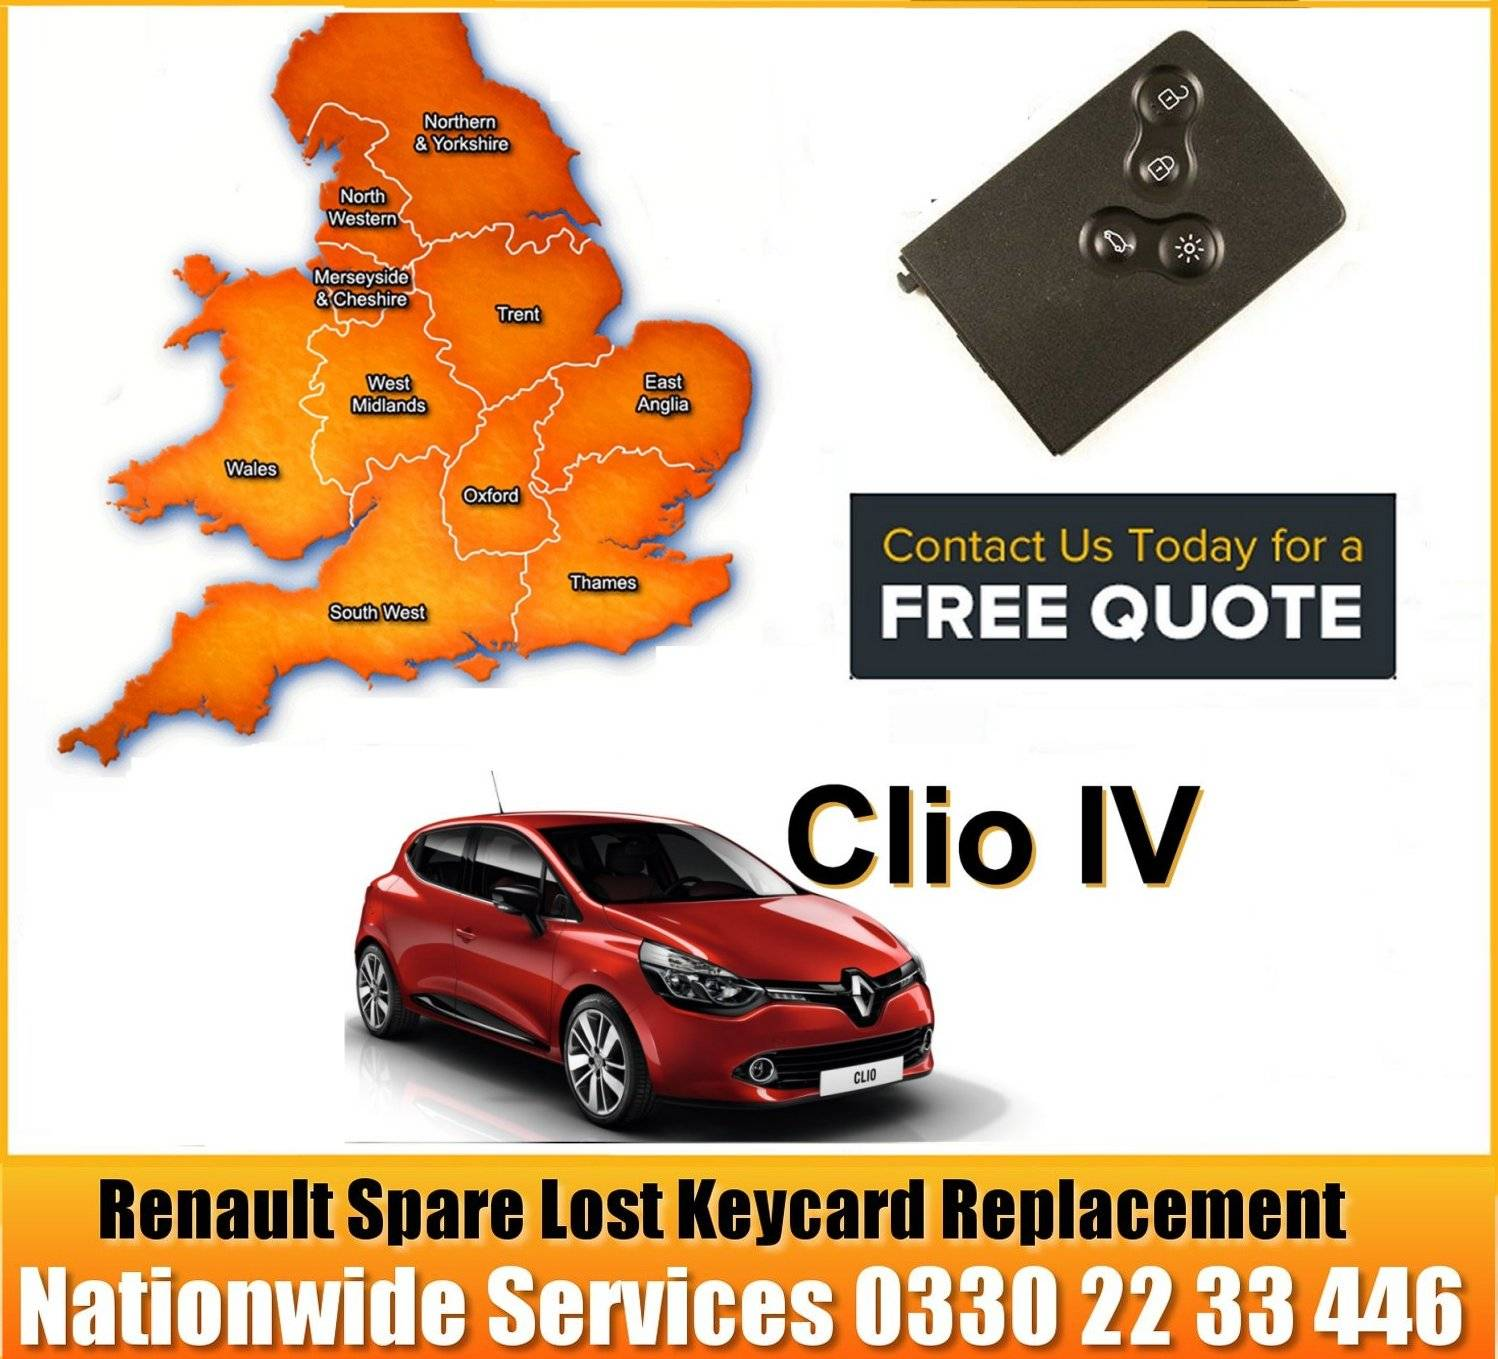 Renault Replacement Remote Key Card Salford	Swinton	Eccles  Walkden  Worsley  Salford  Irlam  Ordsall  Pendlebury  Cadishead Stockport Bramhall  Bredbury  Cheadle